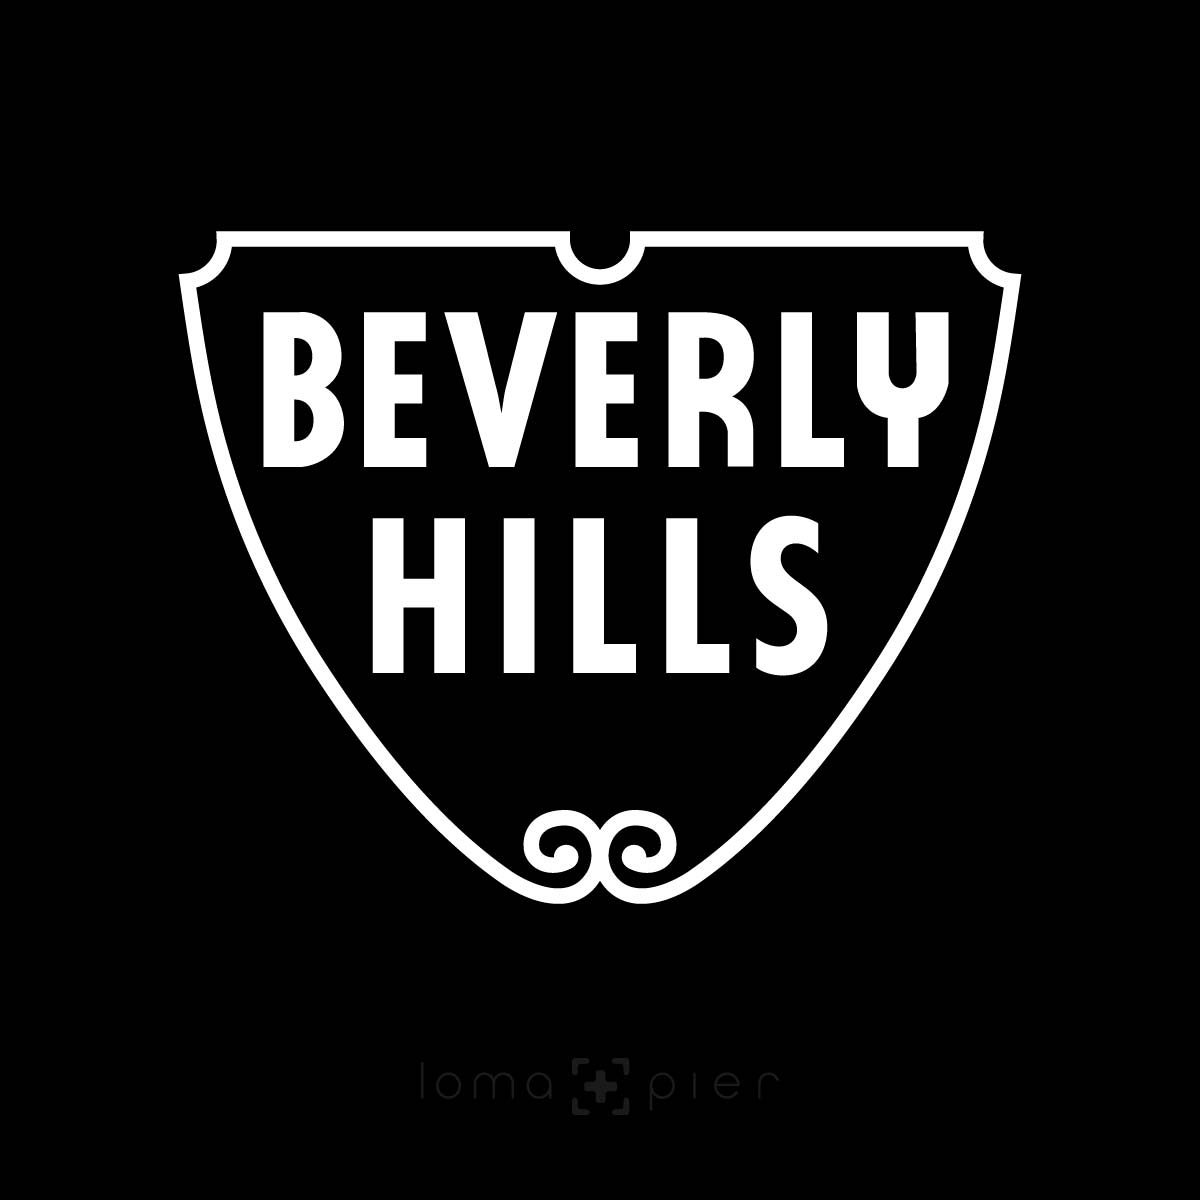 BEVERLY HILLS design by loma+pier